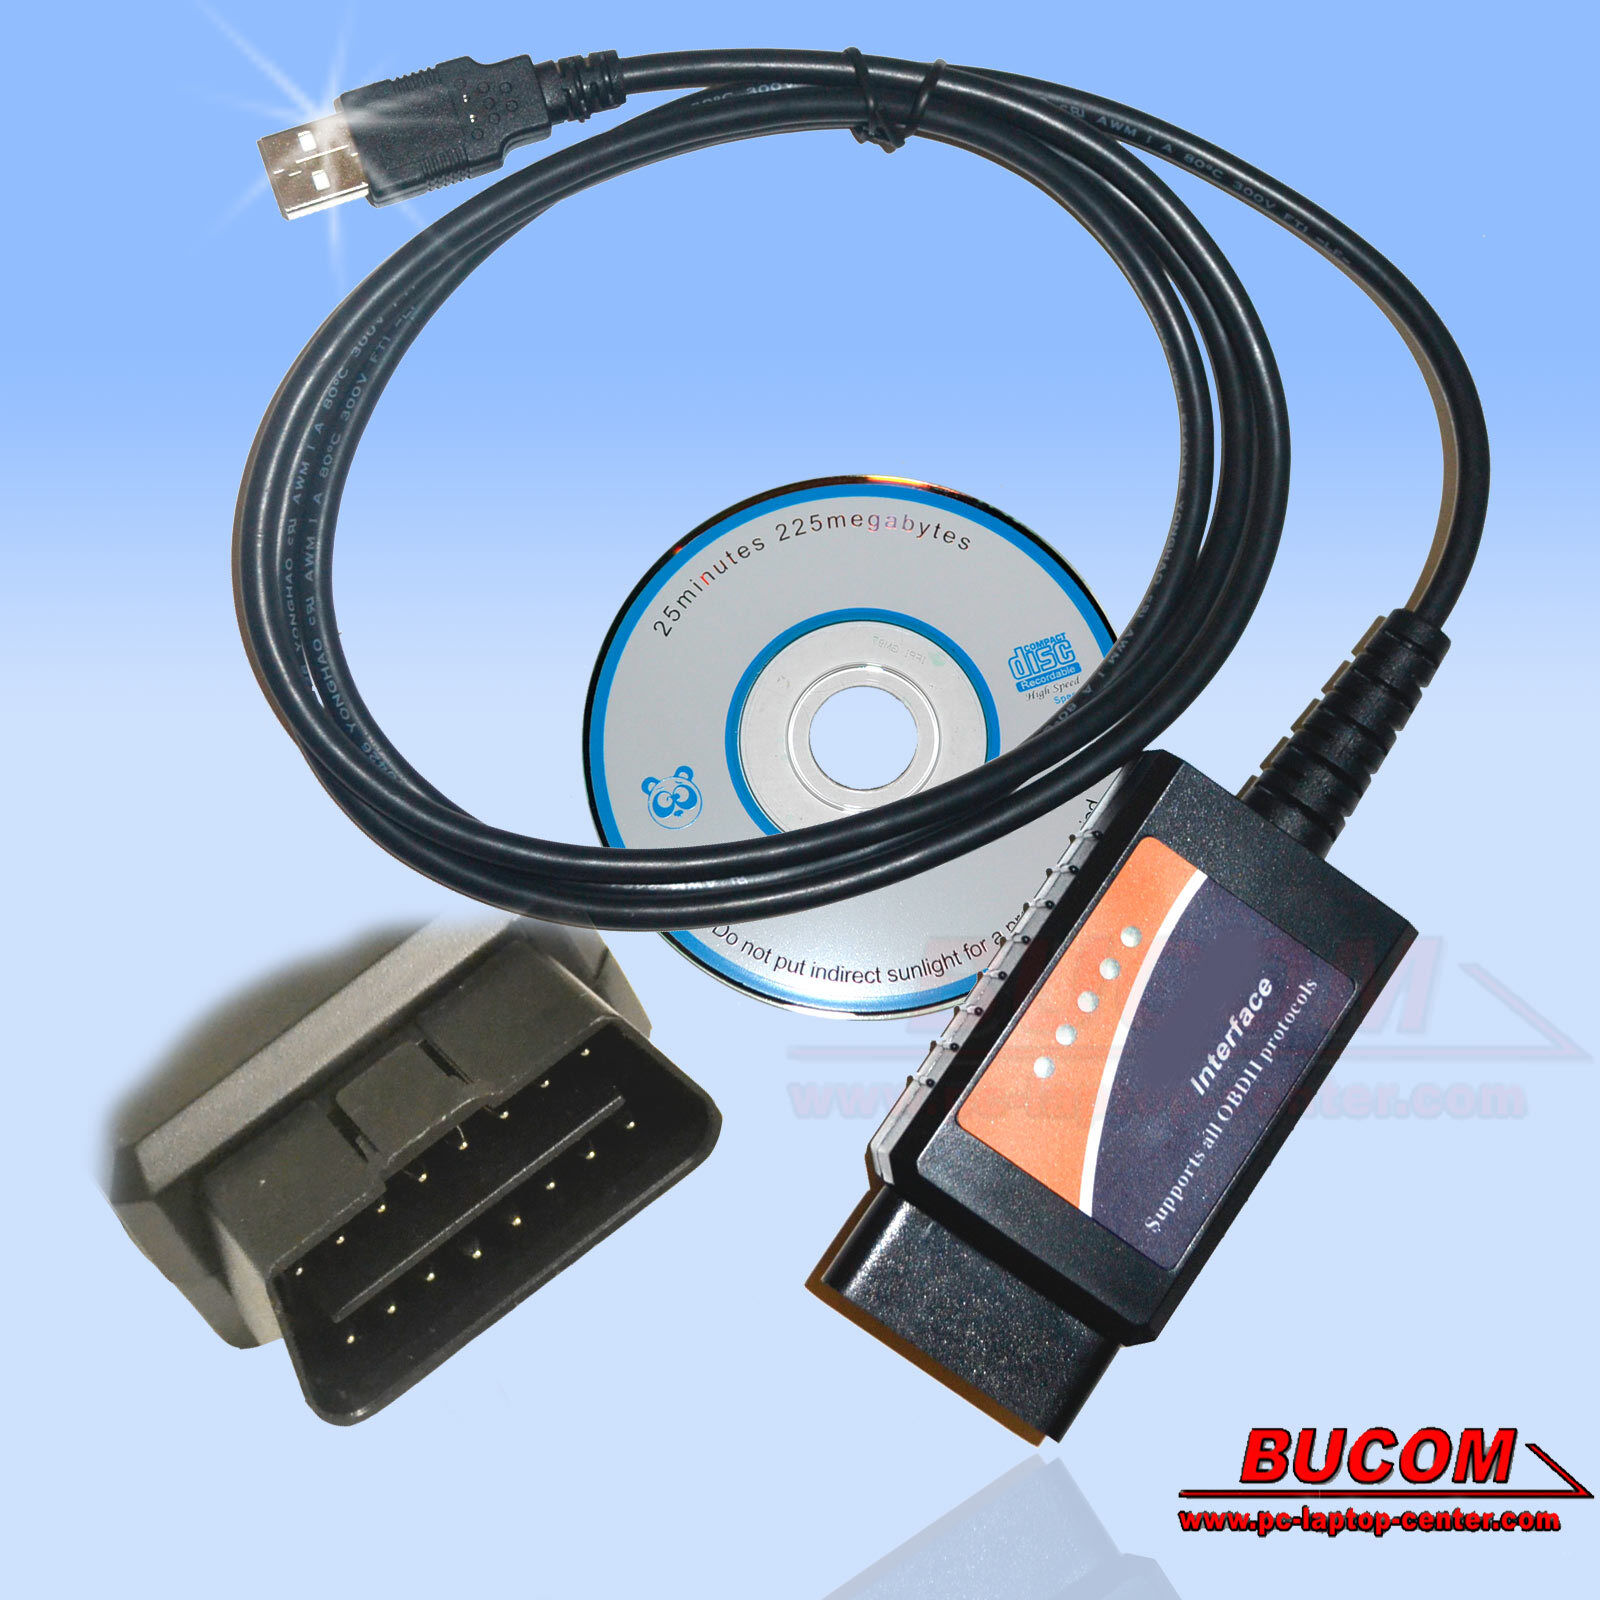 OBD2 Can Bus USB Interface Diagnosis Cable for VAG Smart AMG M5 M3 M1 S  LINE S8